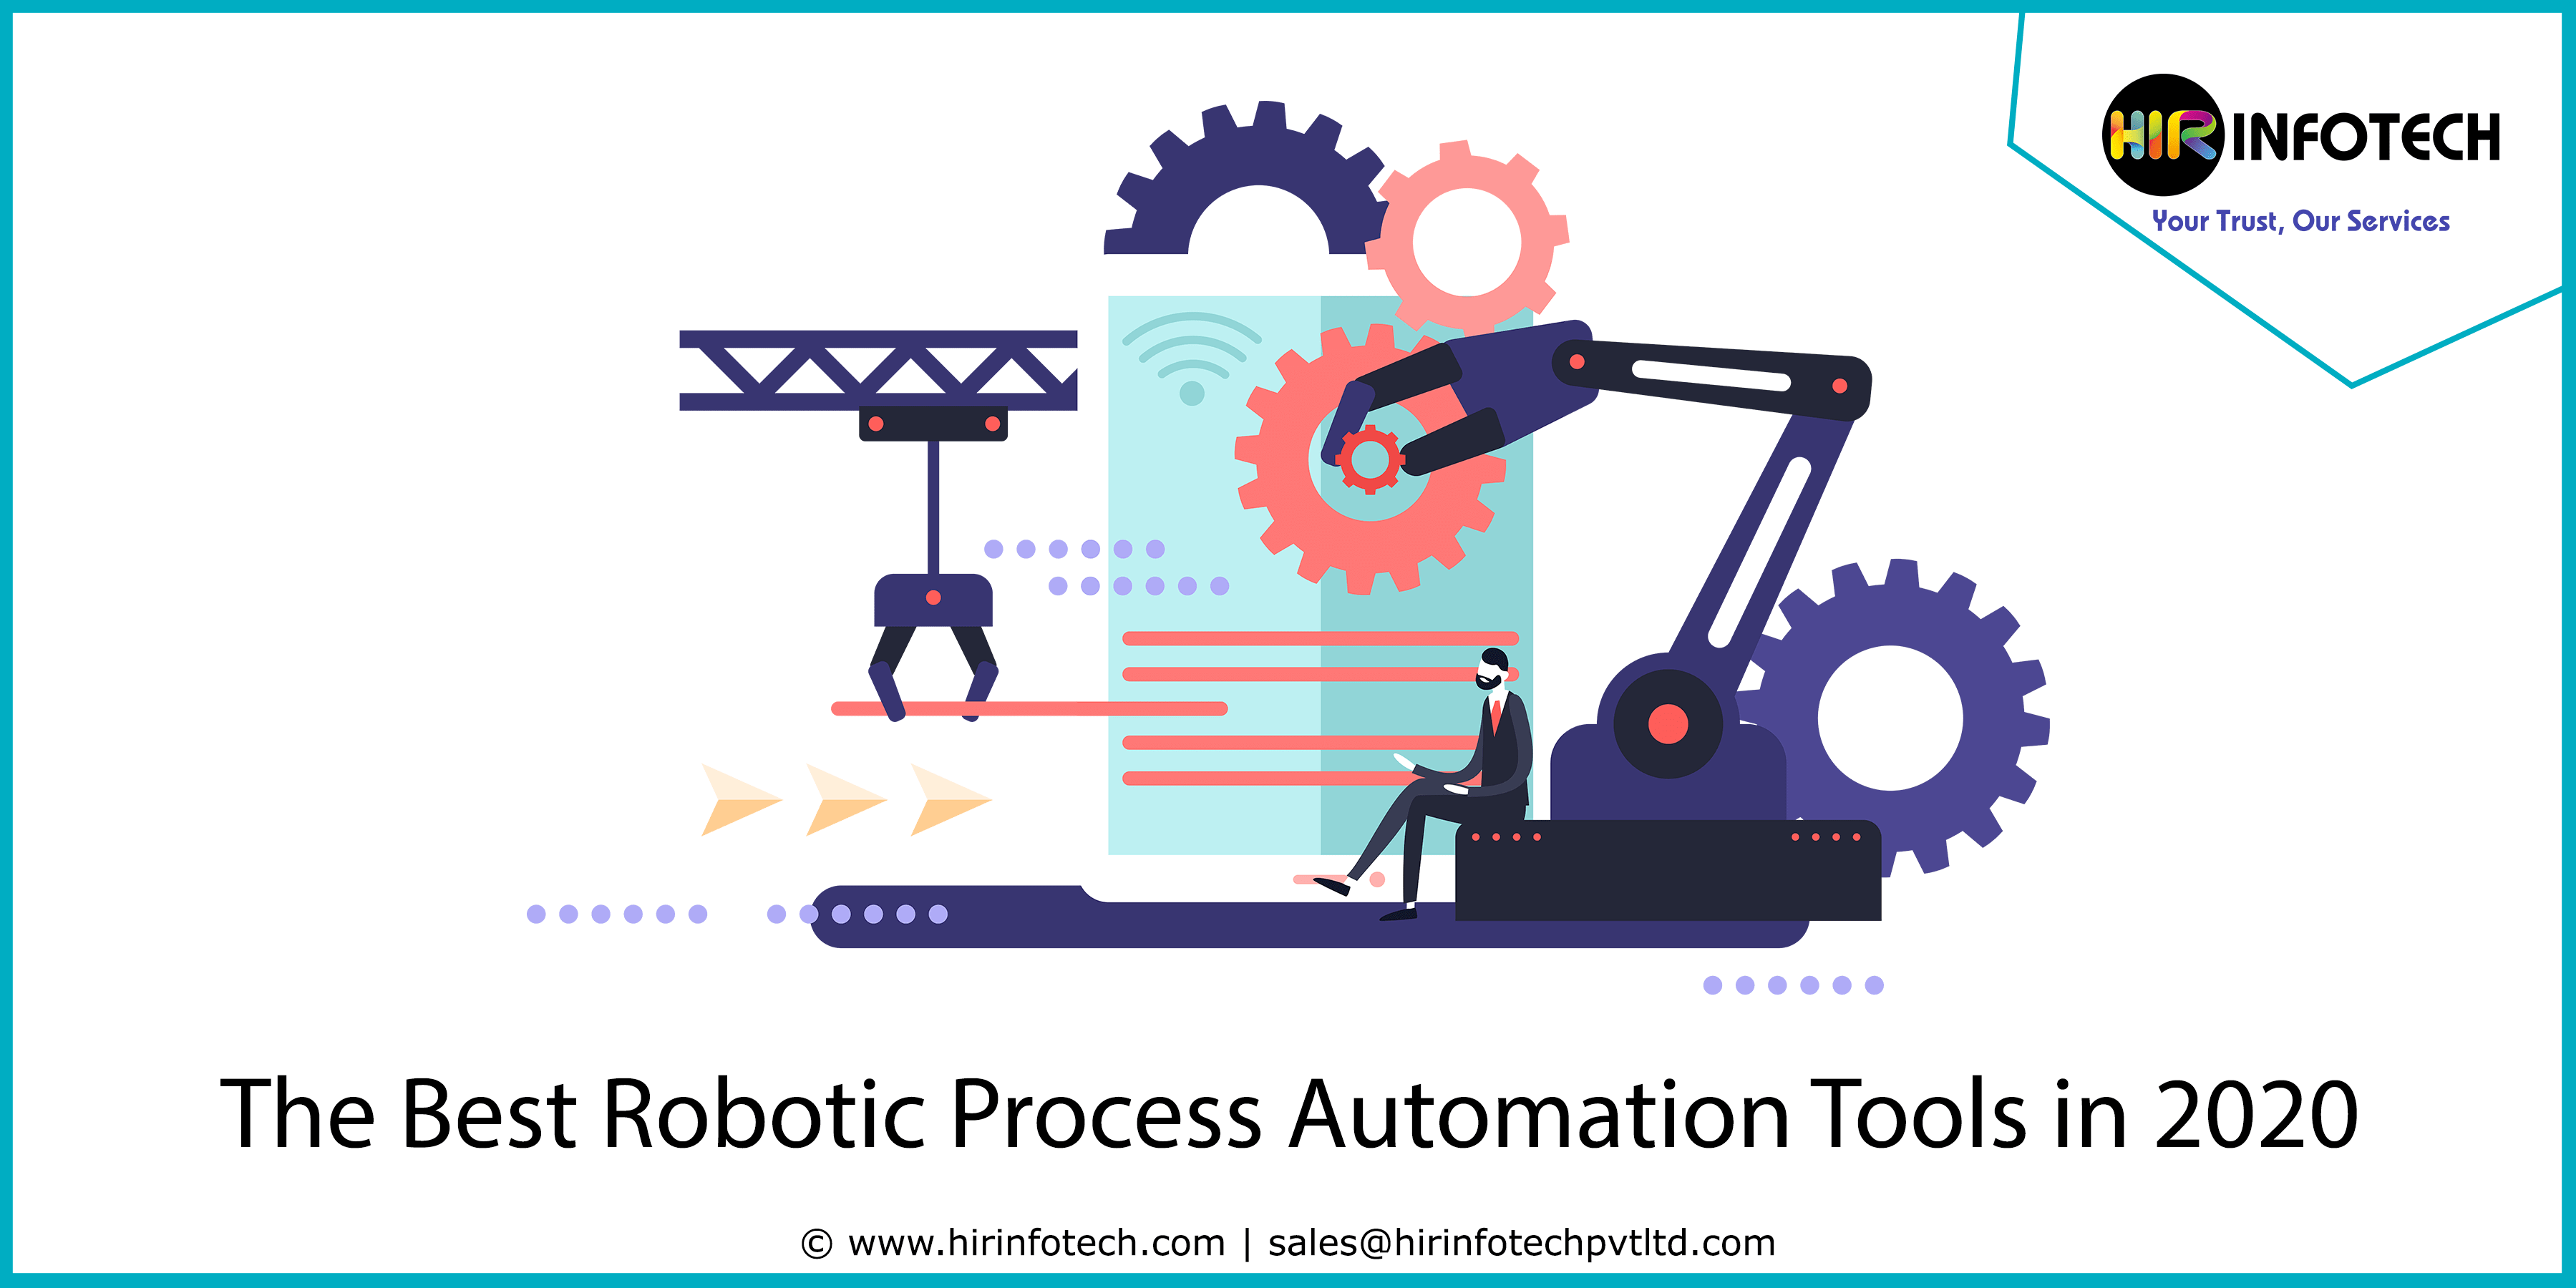 The Best Robotic Process Automation Tools In 2020